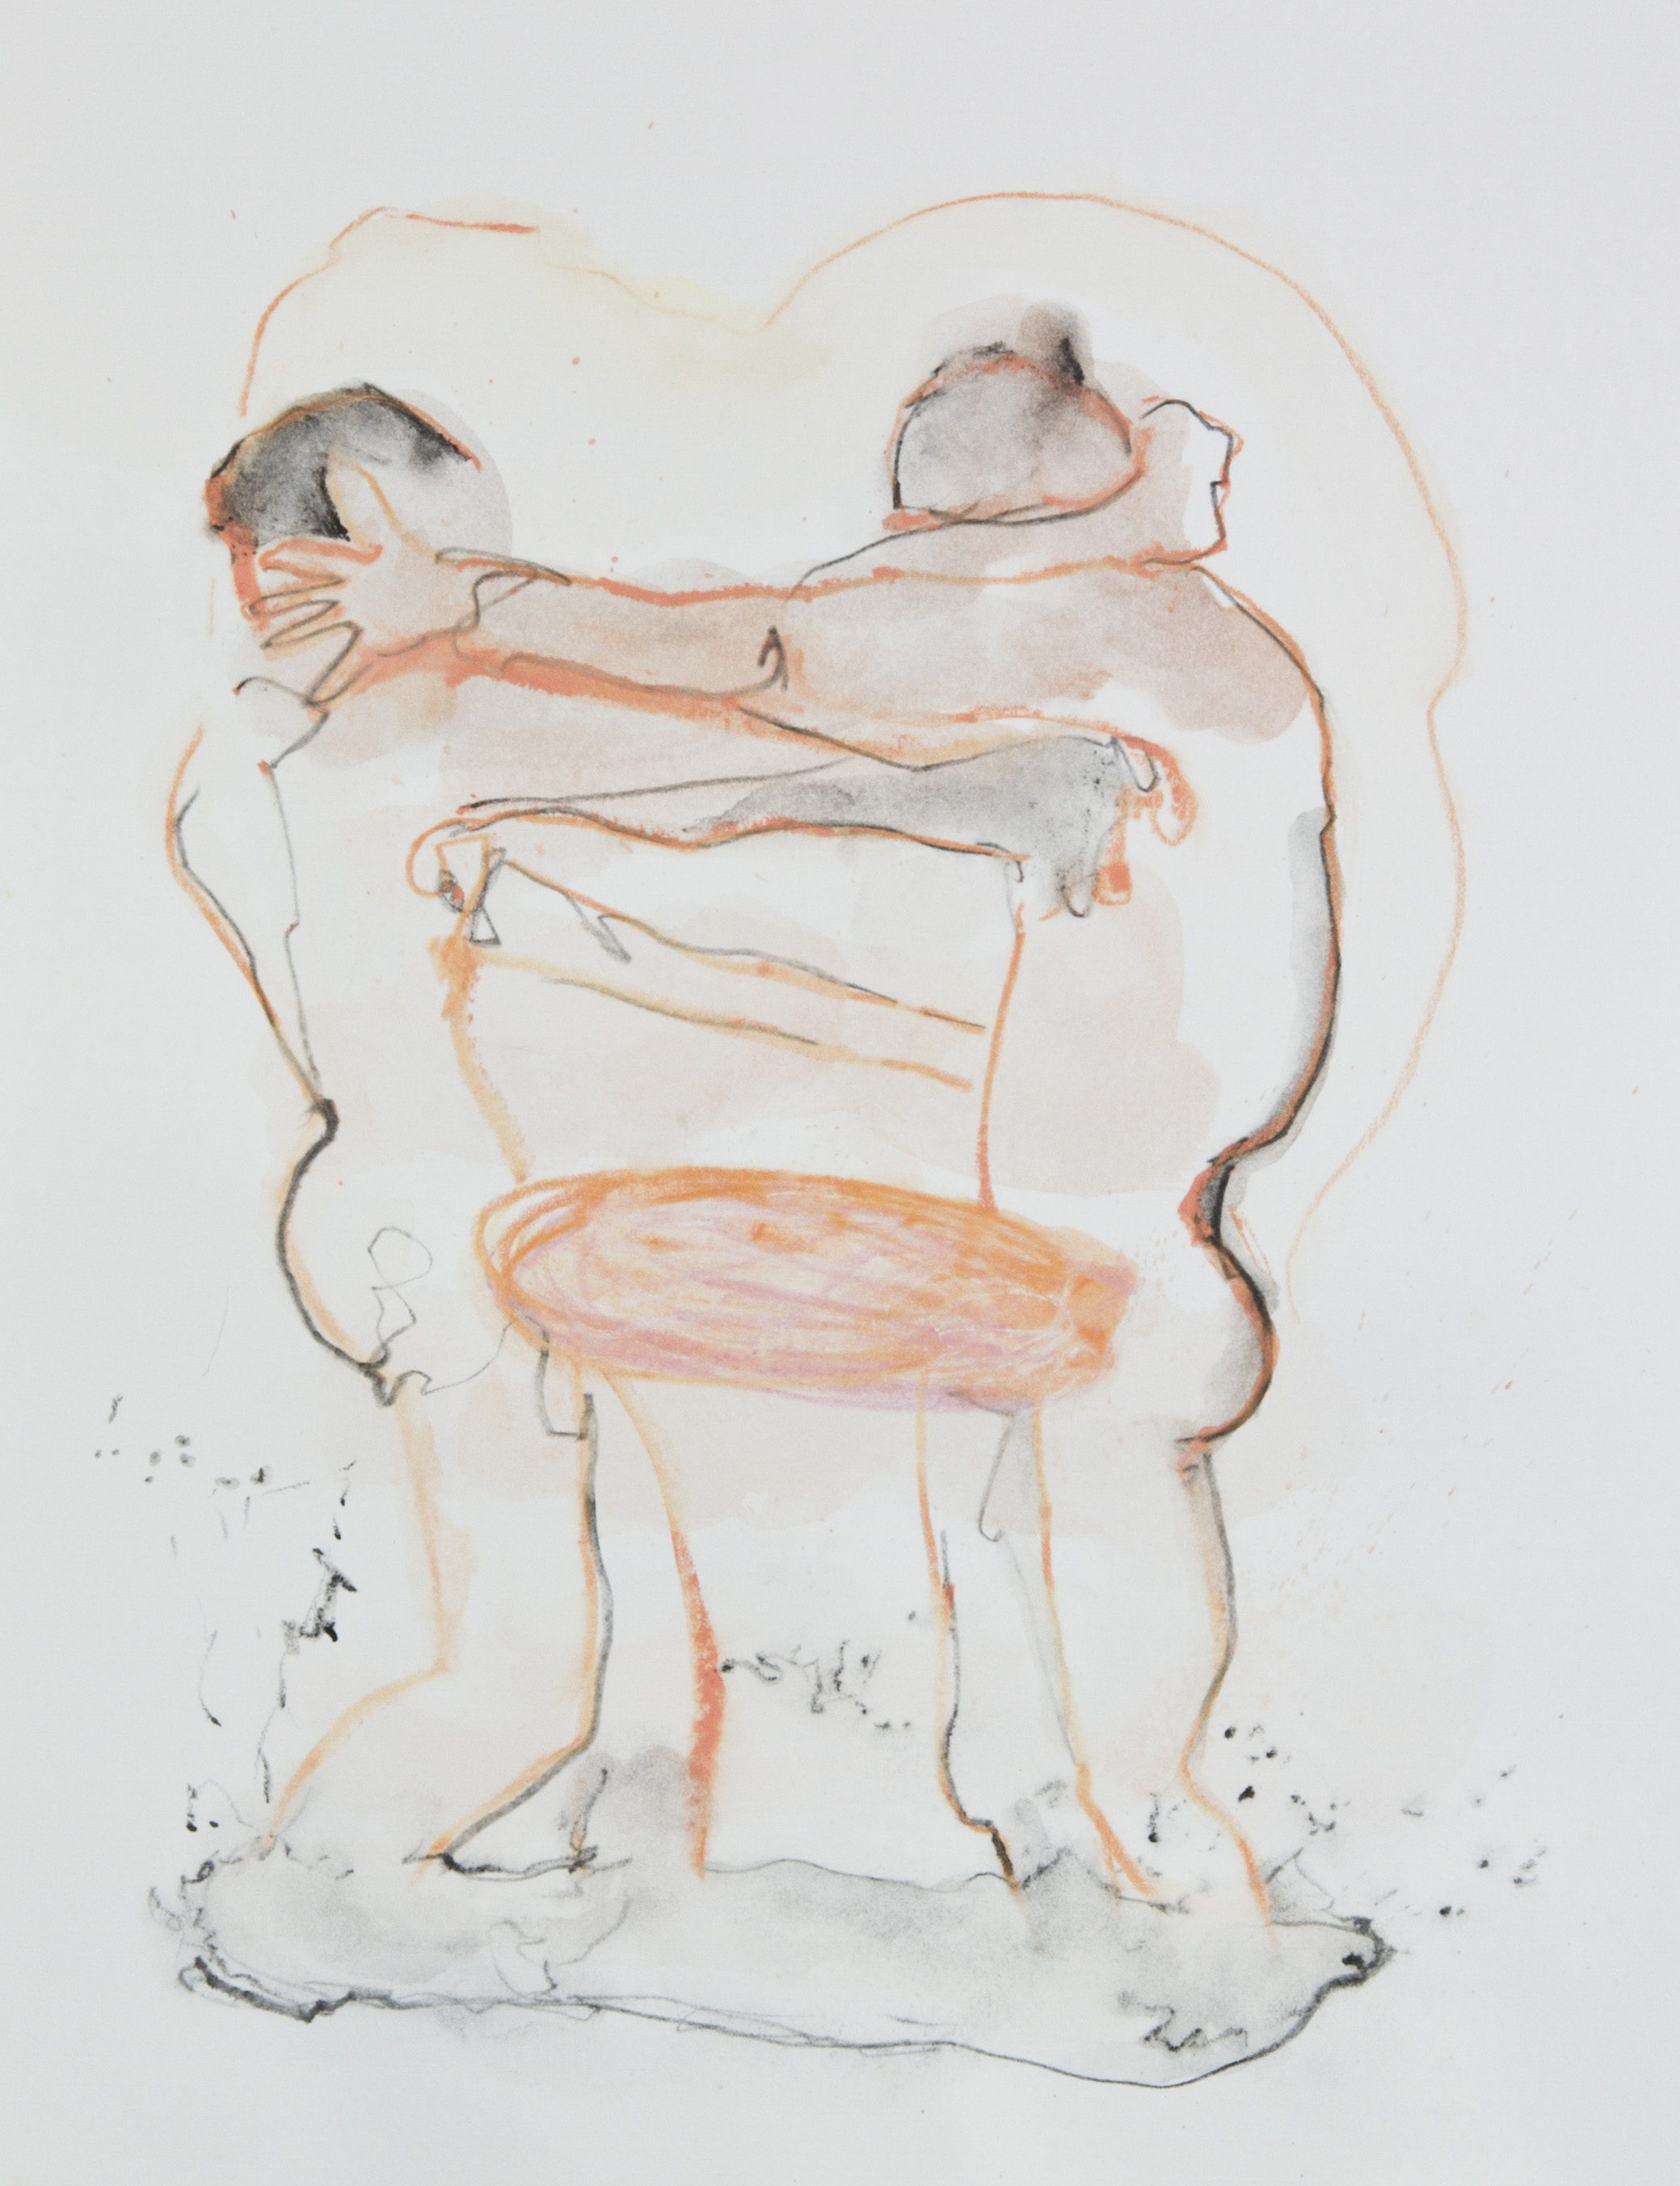 Love Dance, 2013, graphite, crayon and watercolor pencil on paper, 11x14 inches